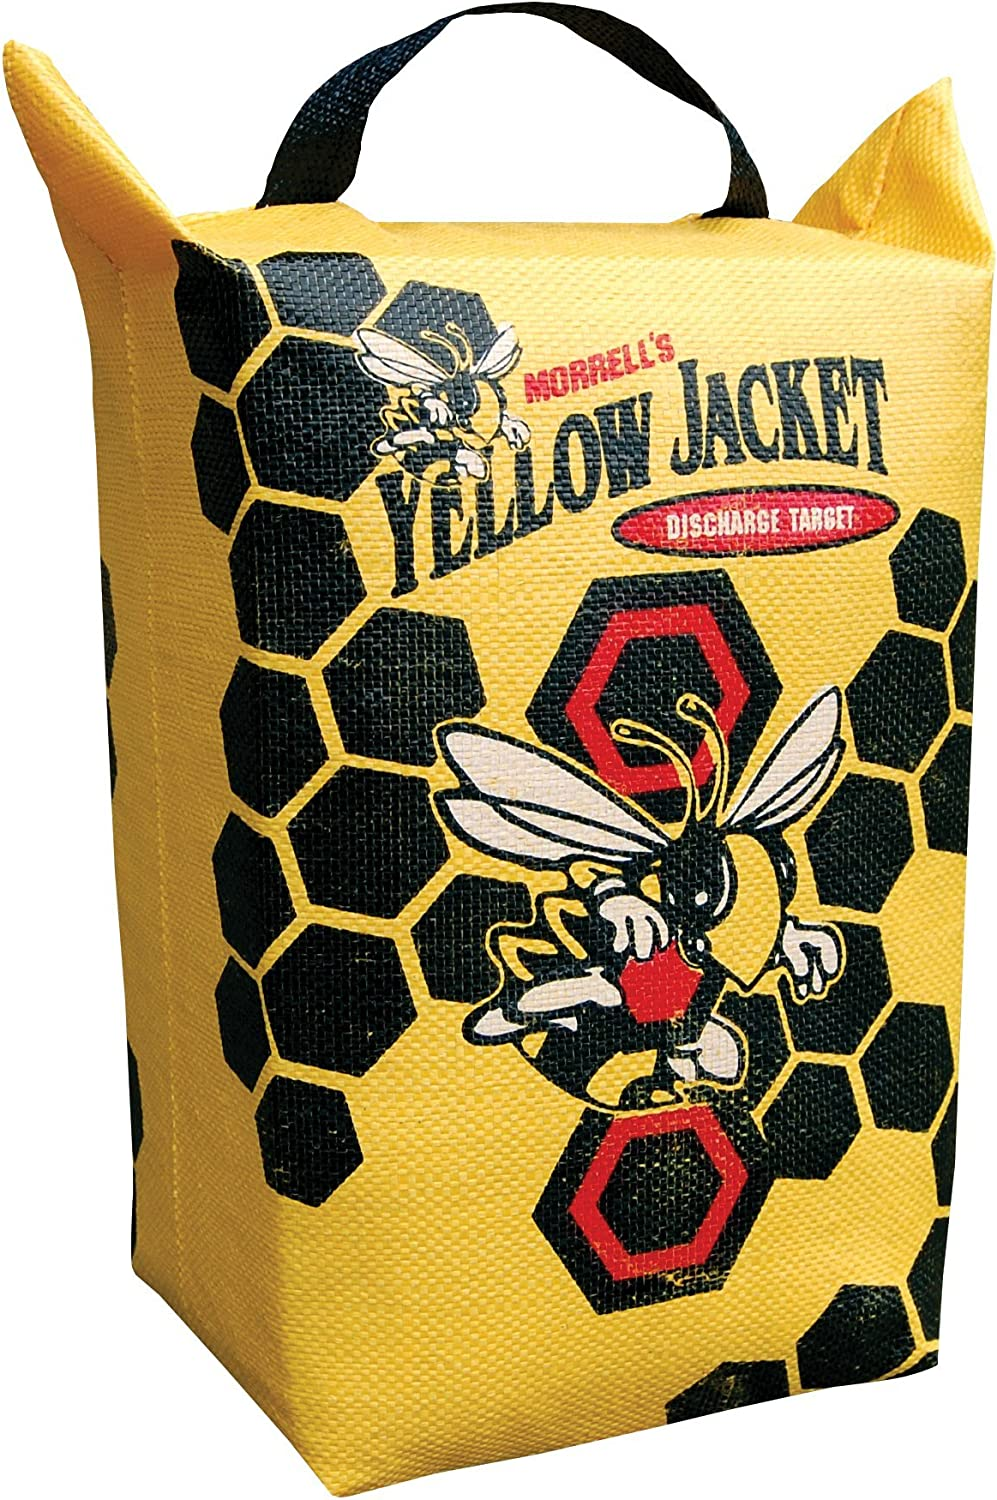 Morrell Yellow Jacket Crossbow Bolt Discharge Bag Archery Target for Safely